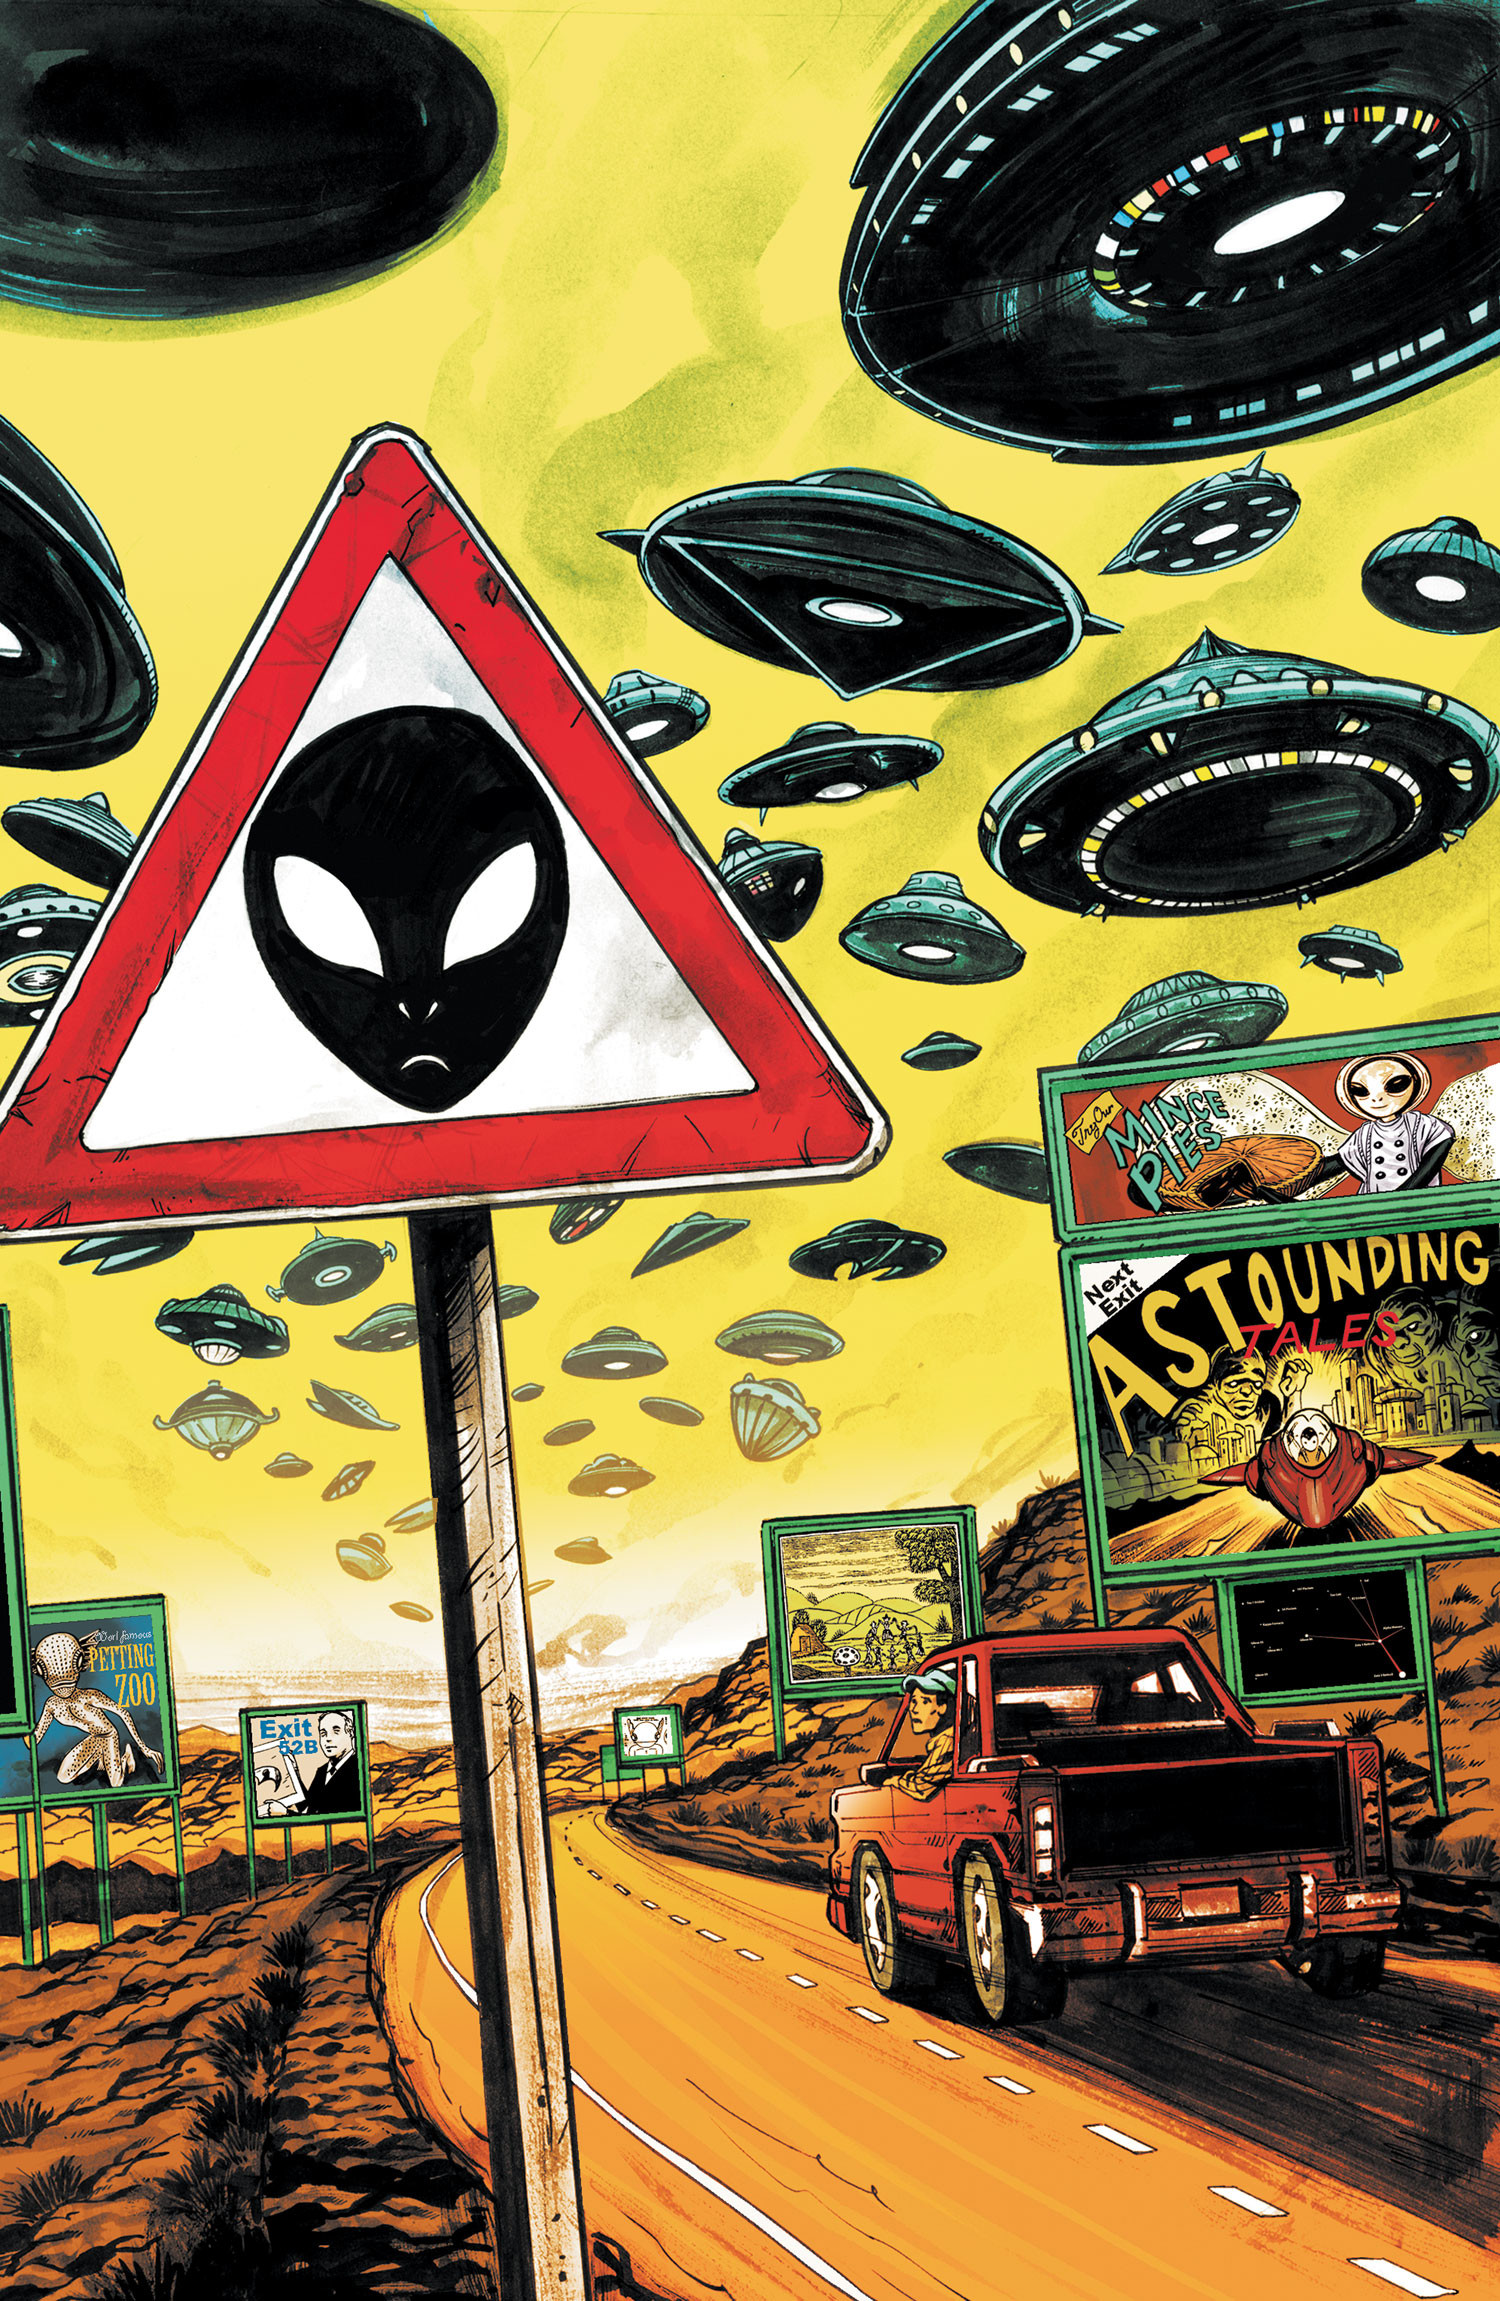 SAUCER COUNTRY #6 – In this special stand-alone issue, discover the history